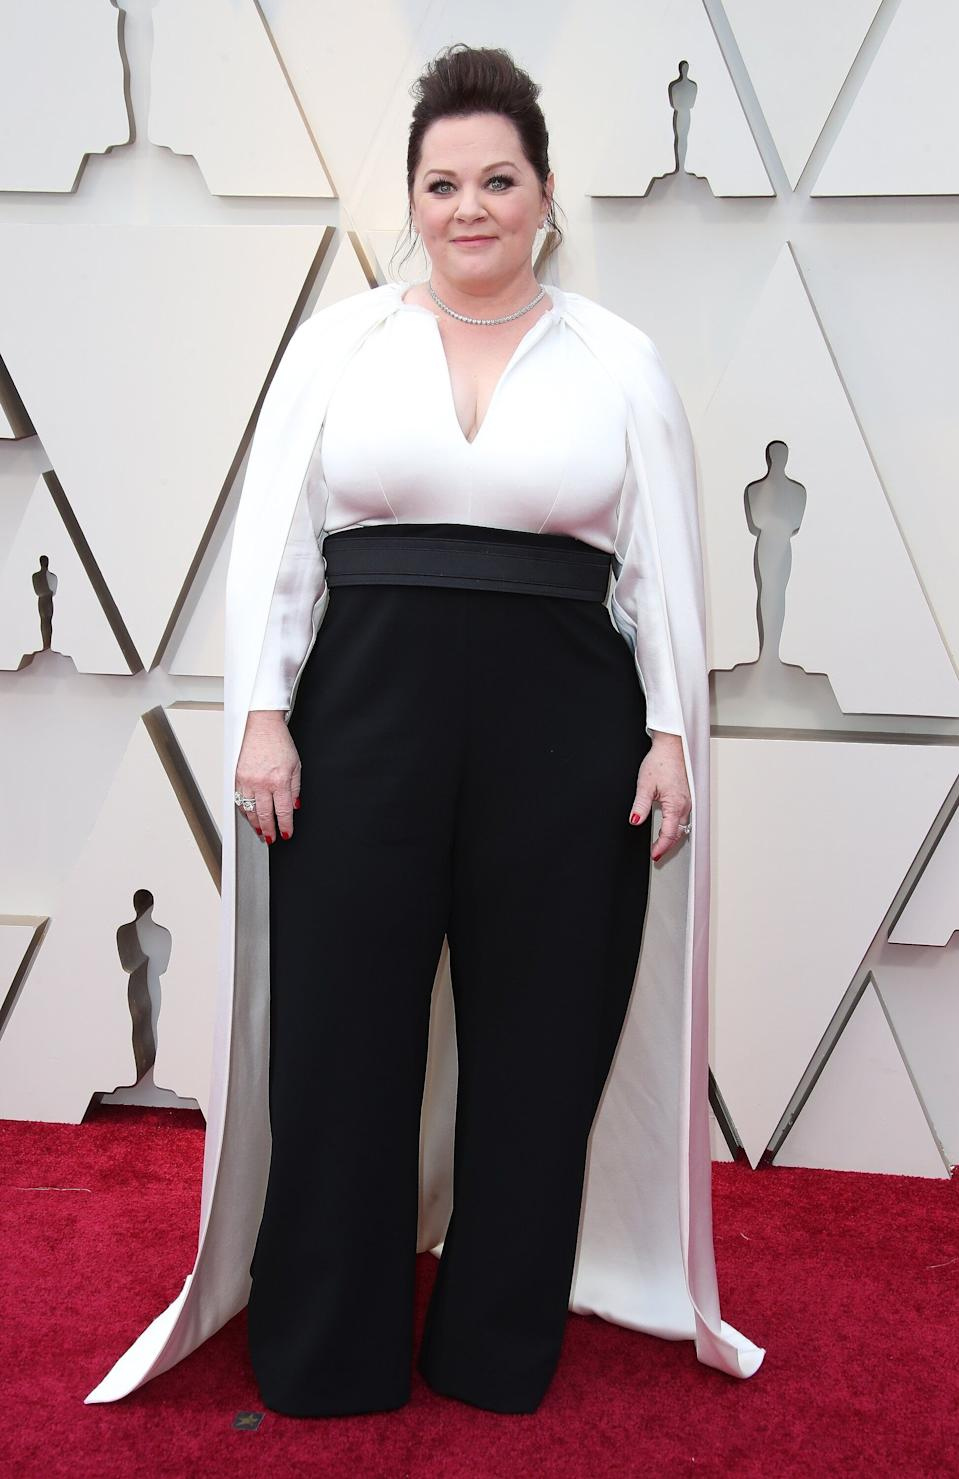 Melissa McCarthy arrives at the 91st Annual Academy Awards on Feb. 24, 2019, in Hollywood, California. (Photo: Dan MacMedan/Getty Images)